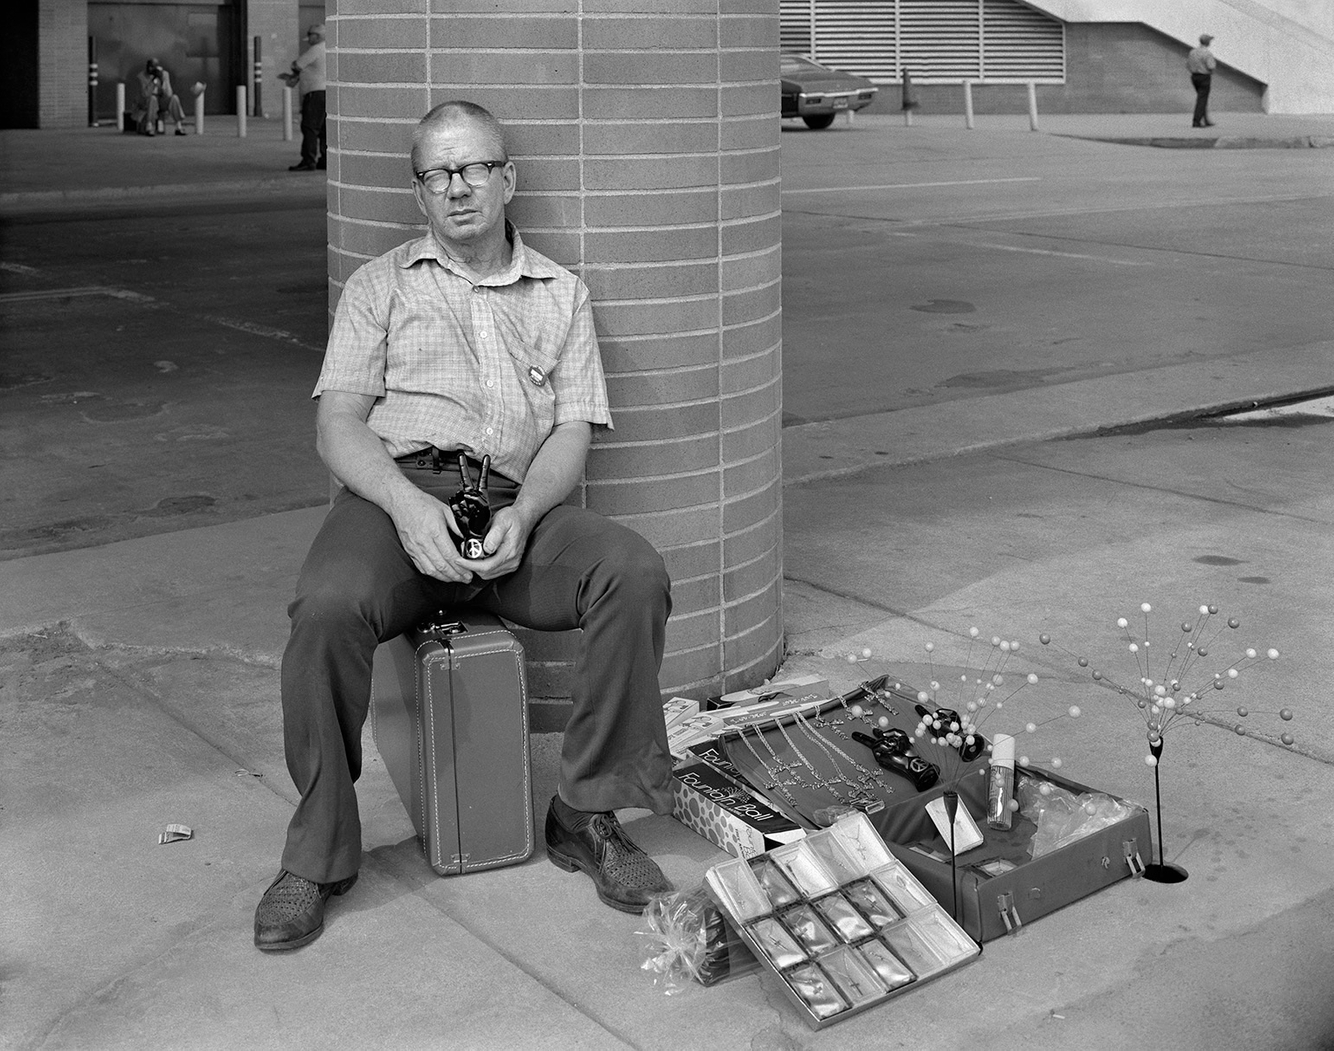 A Man Selling Trinkets from a Suitcase, Detroit, 26 Aug. 1973